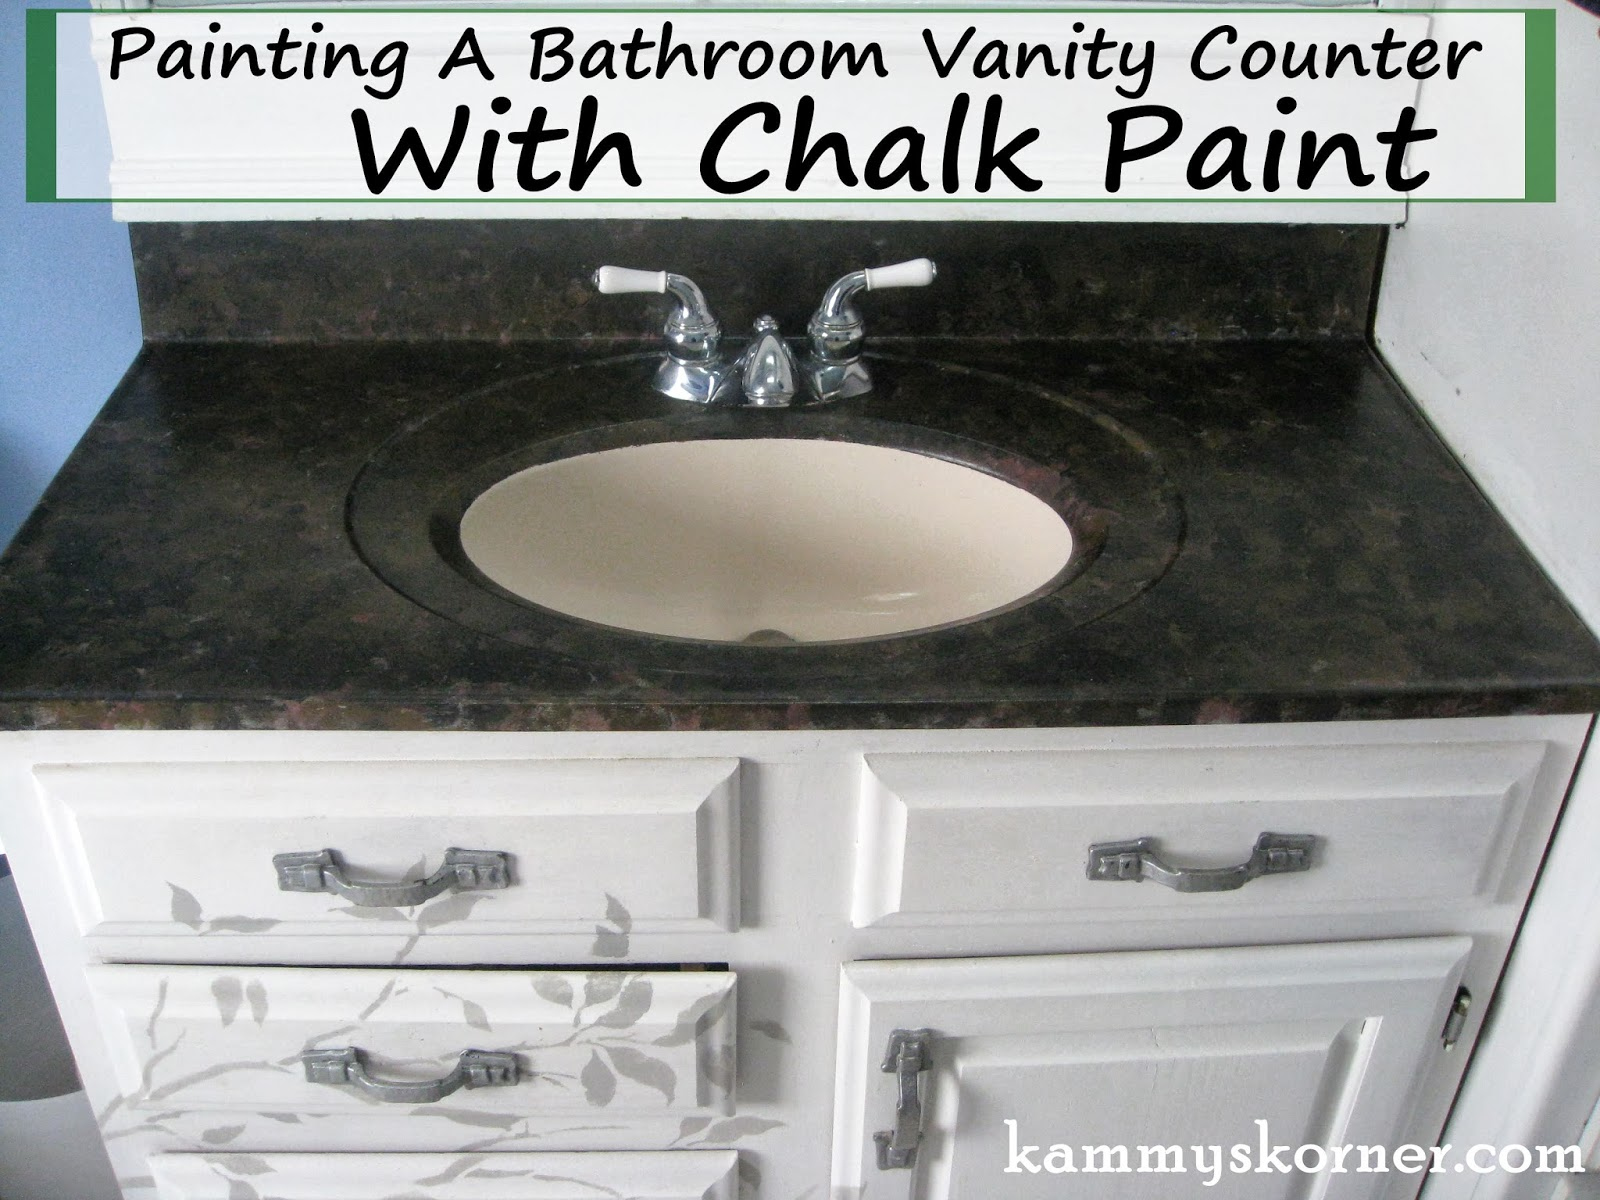 kammy's korner: painting a porcelain vanity countertop {new and